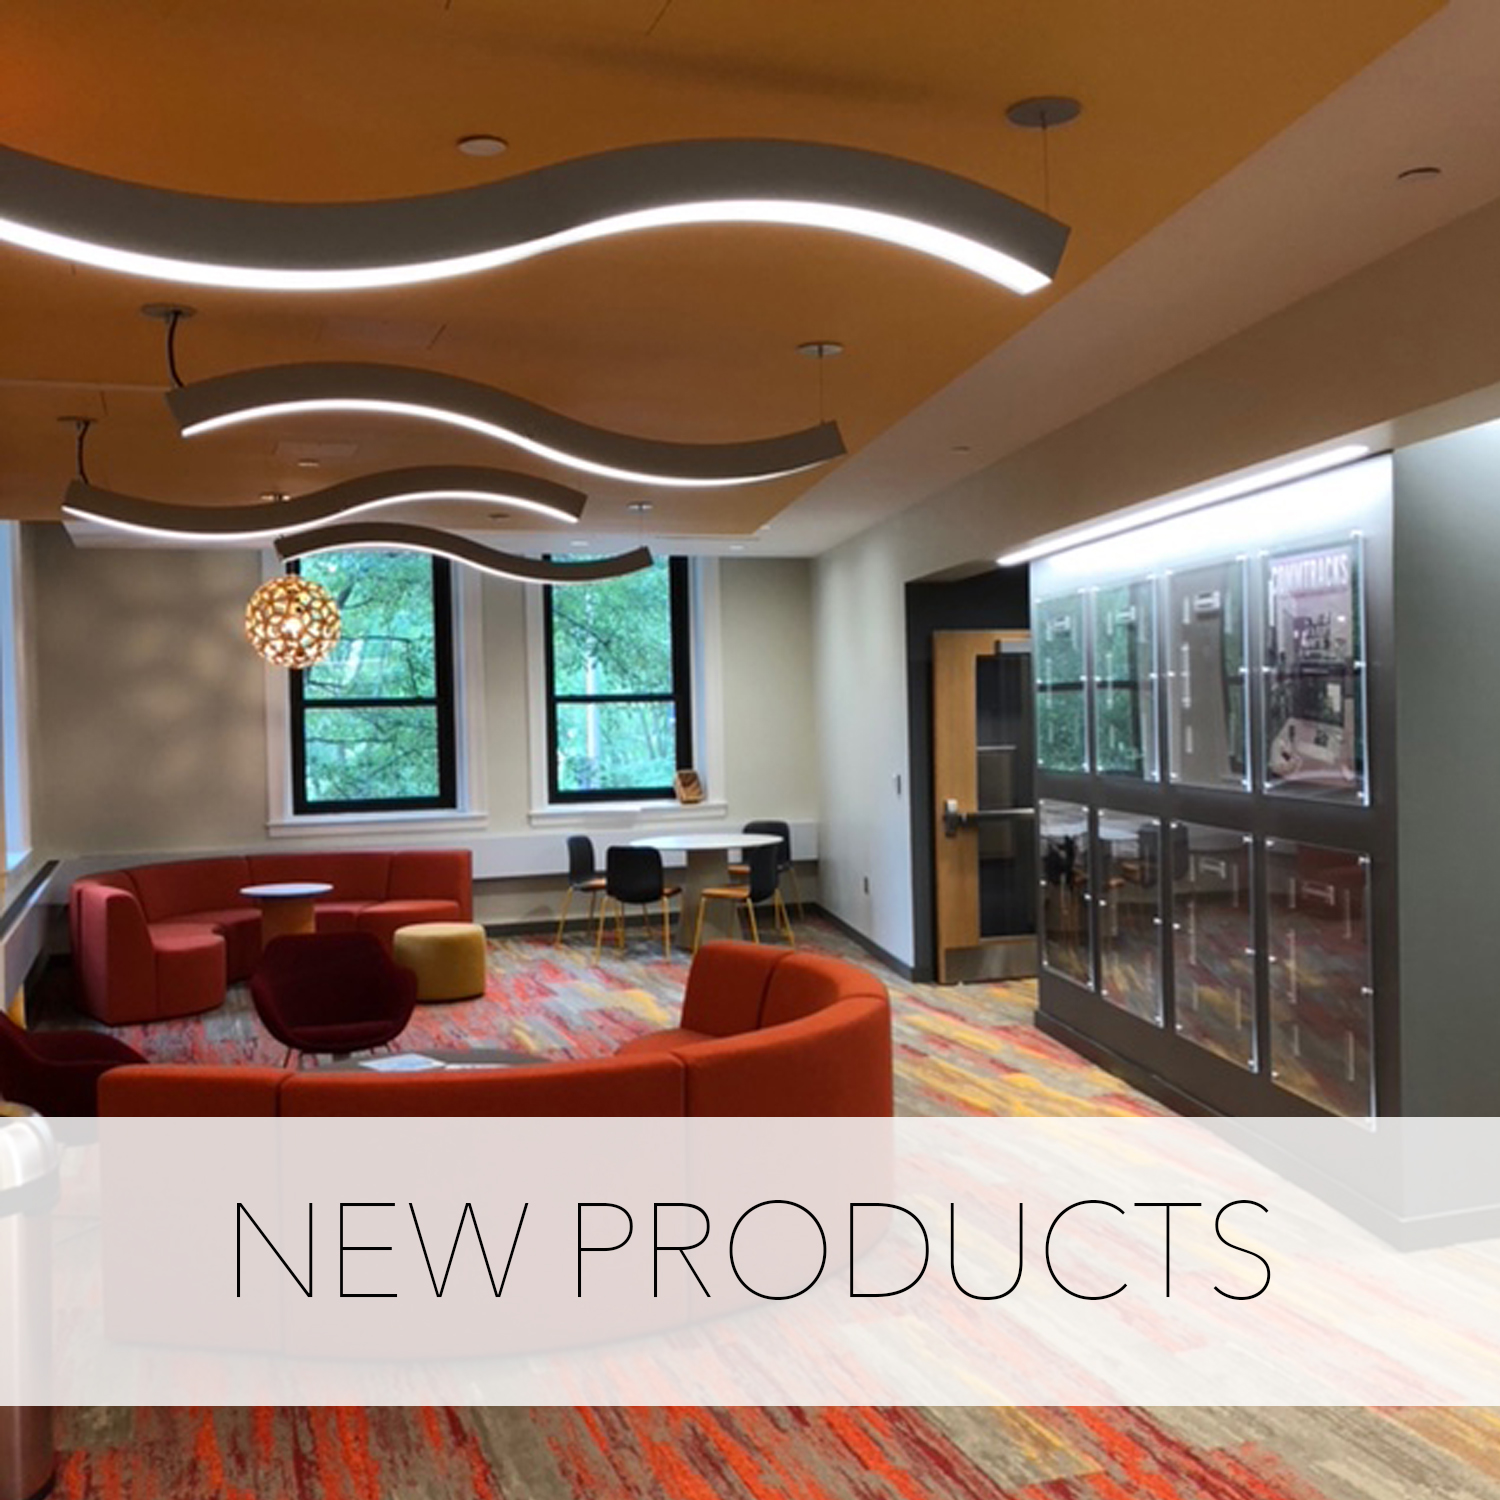 new products at PMC lighting